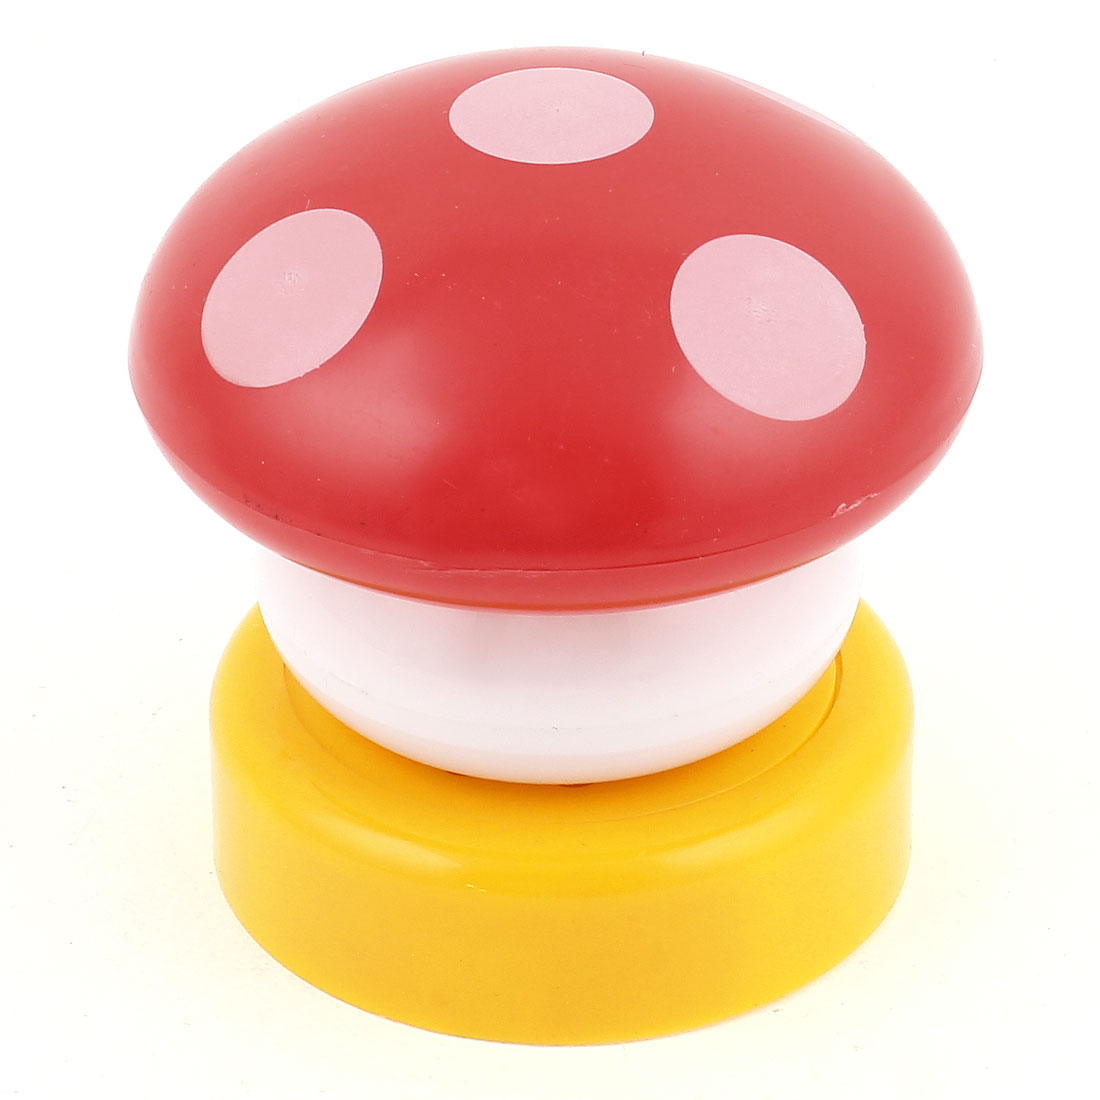 Mushroom Head Press Down Touch LED Lamp Bed Desk Night Light Red